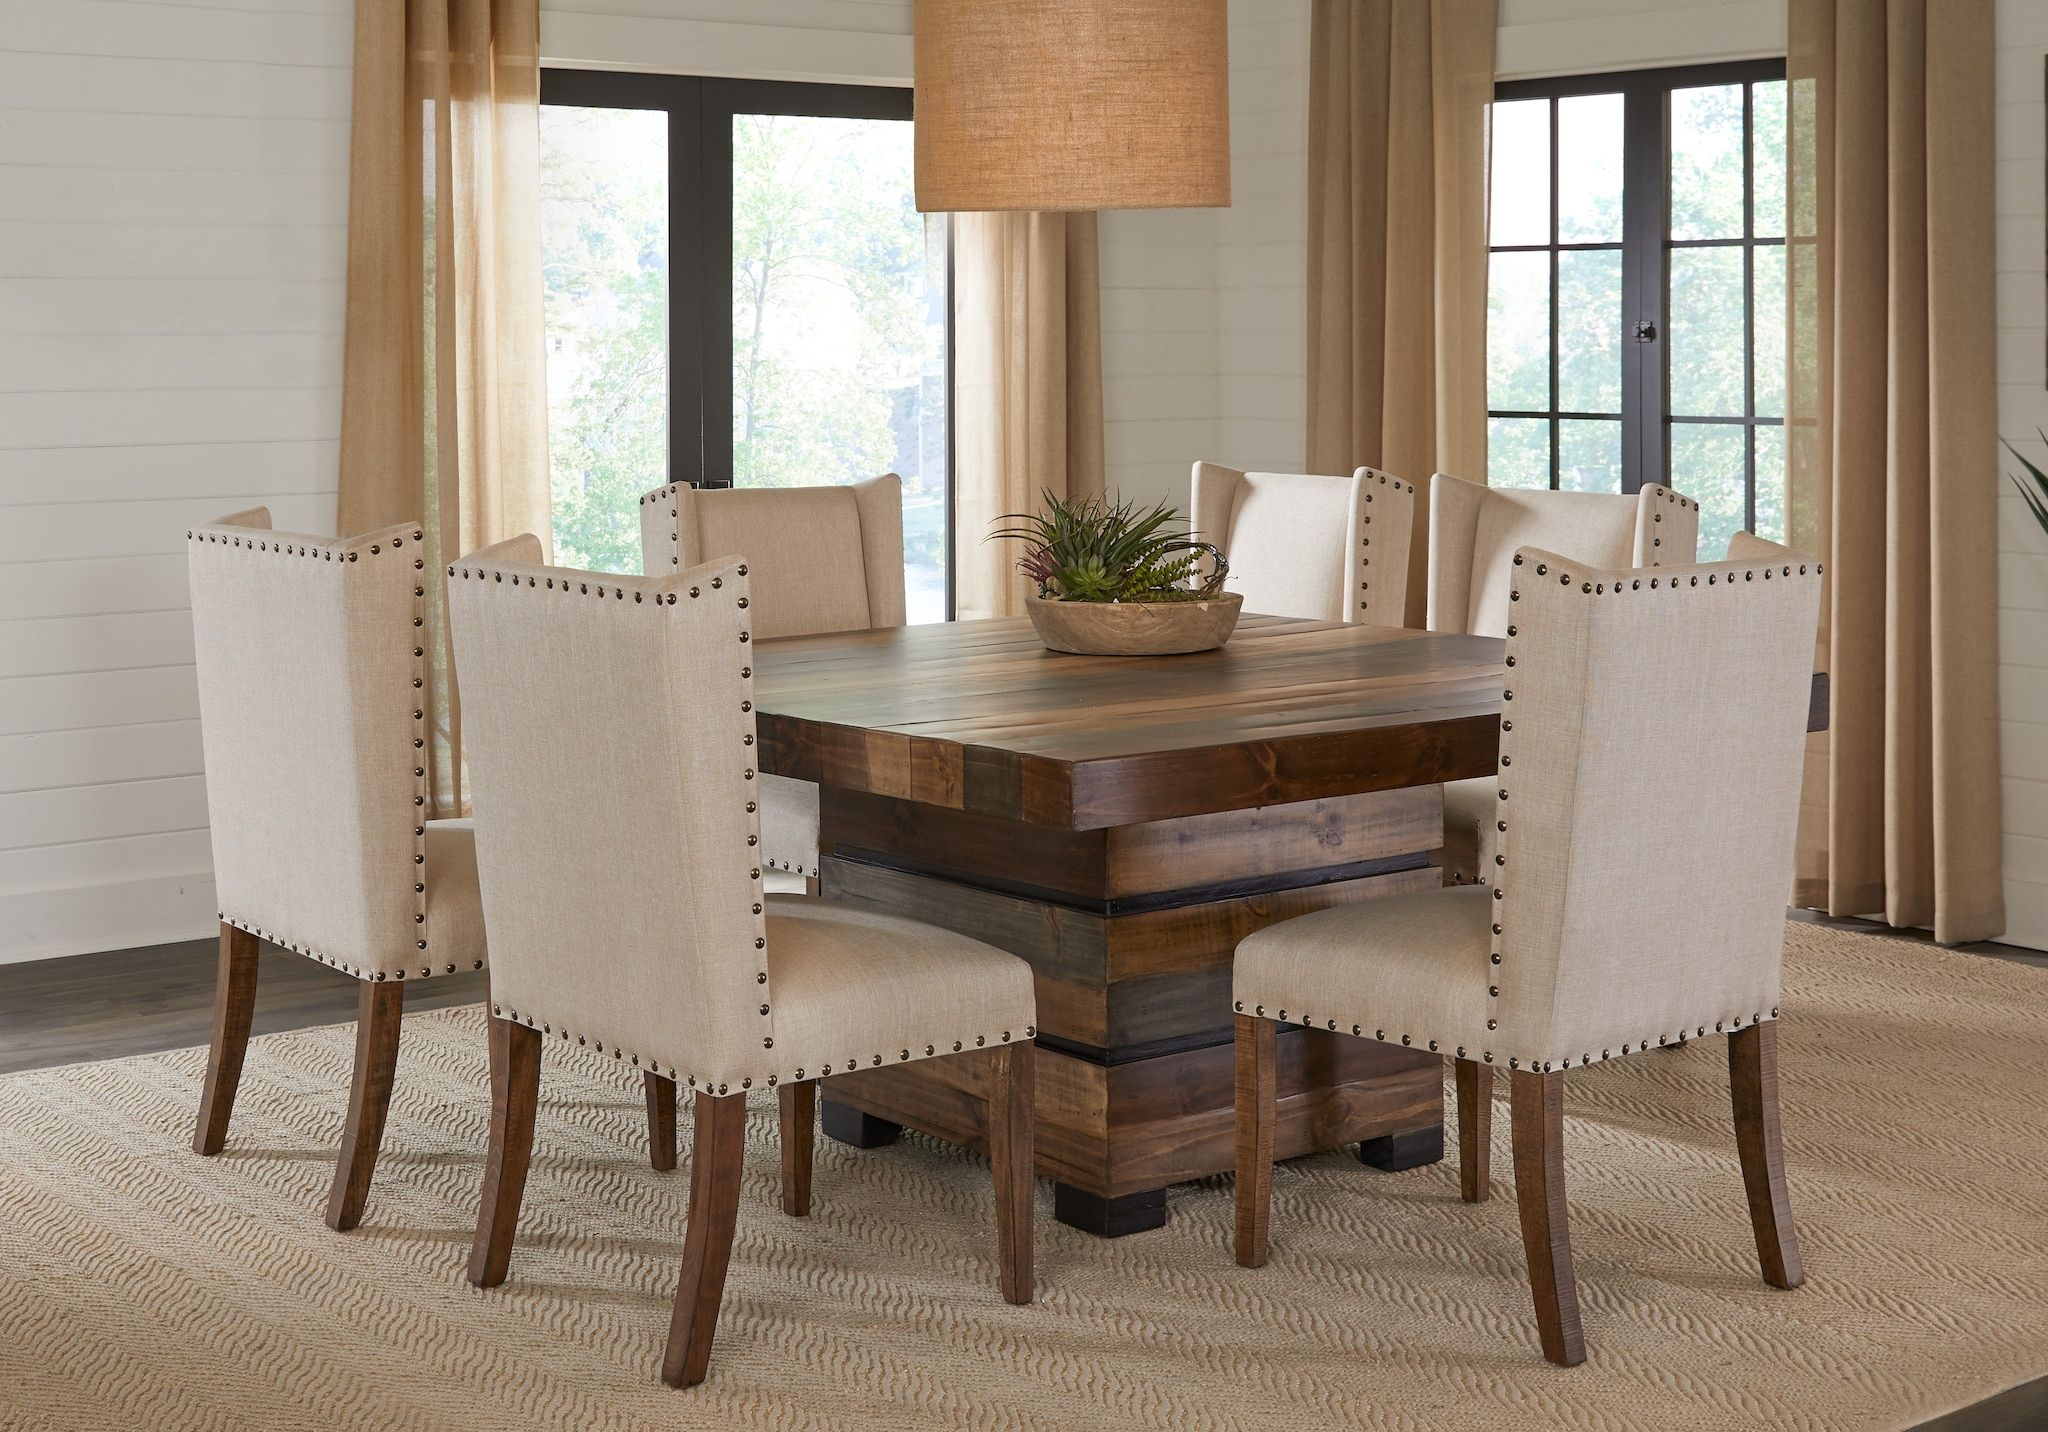 21 Stunning Wood Dining Chair In Dining Room Design Square